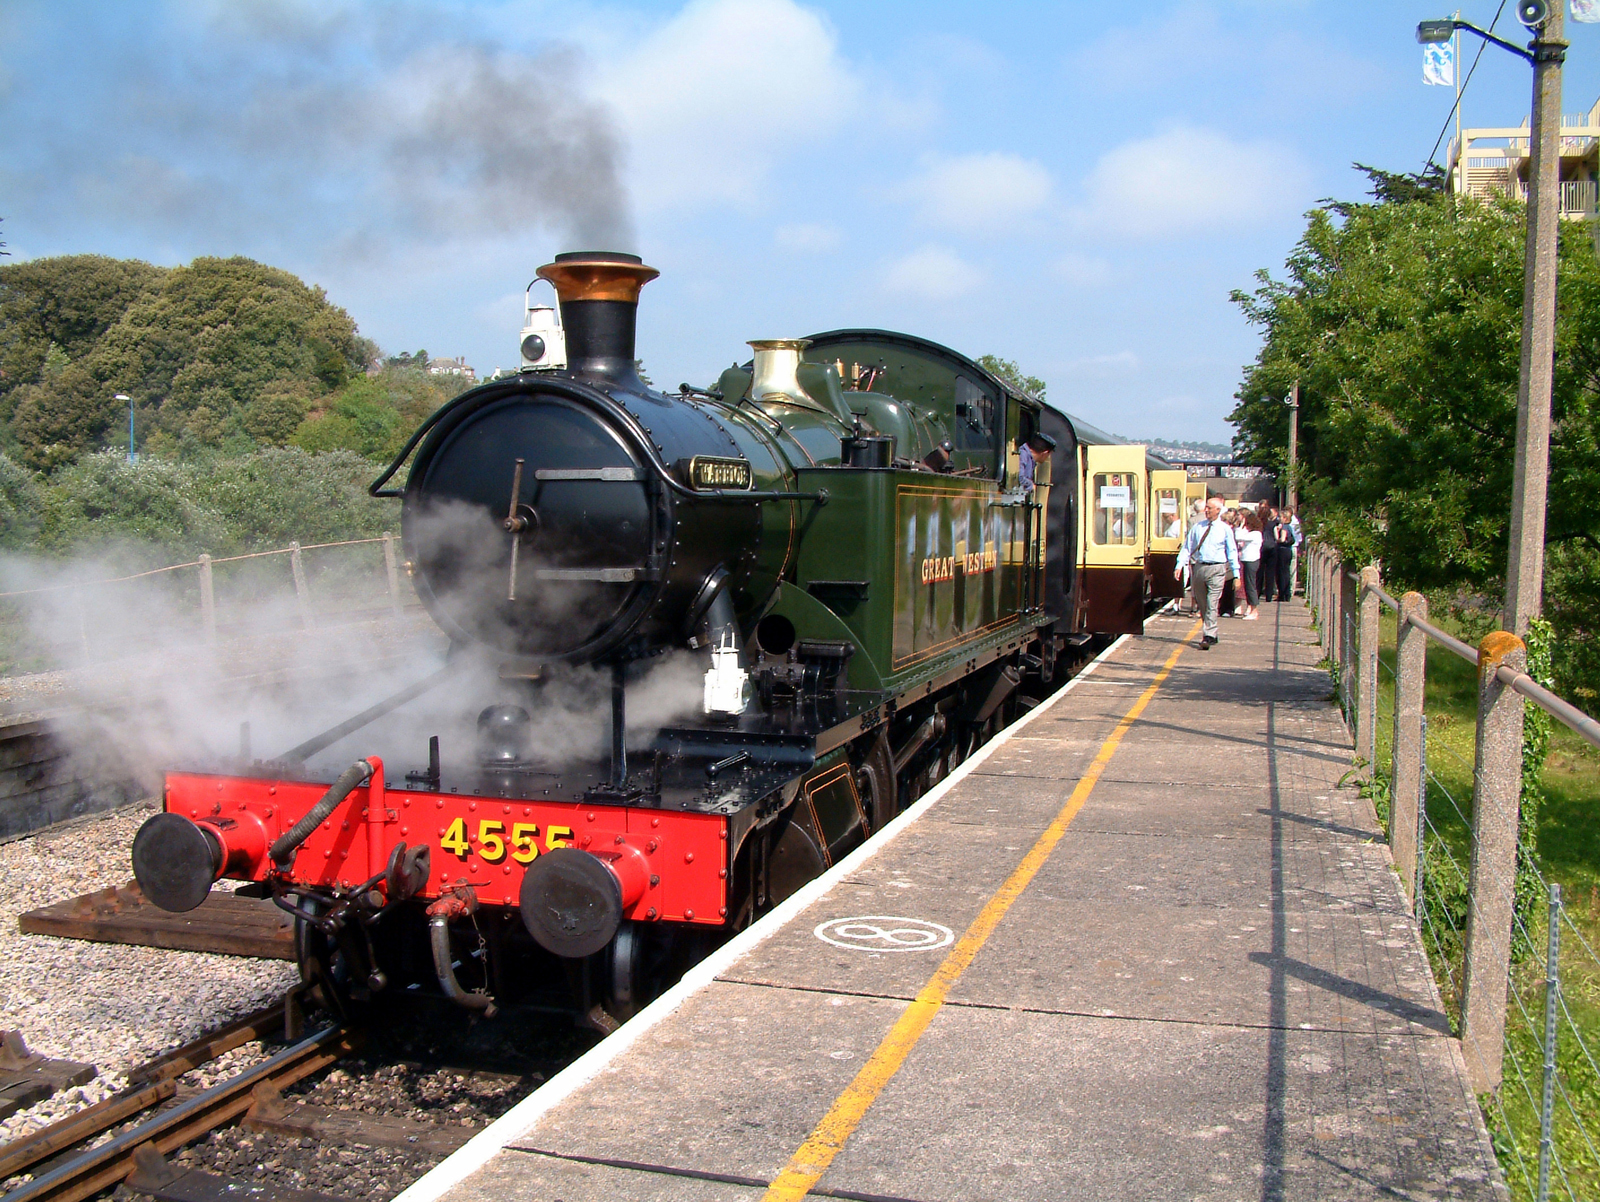 The Dartmouth Steam Railway linking The English Riviera with Dartmouth in south Devon